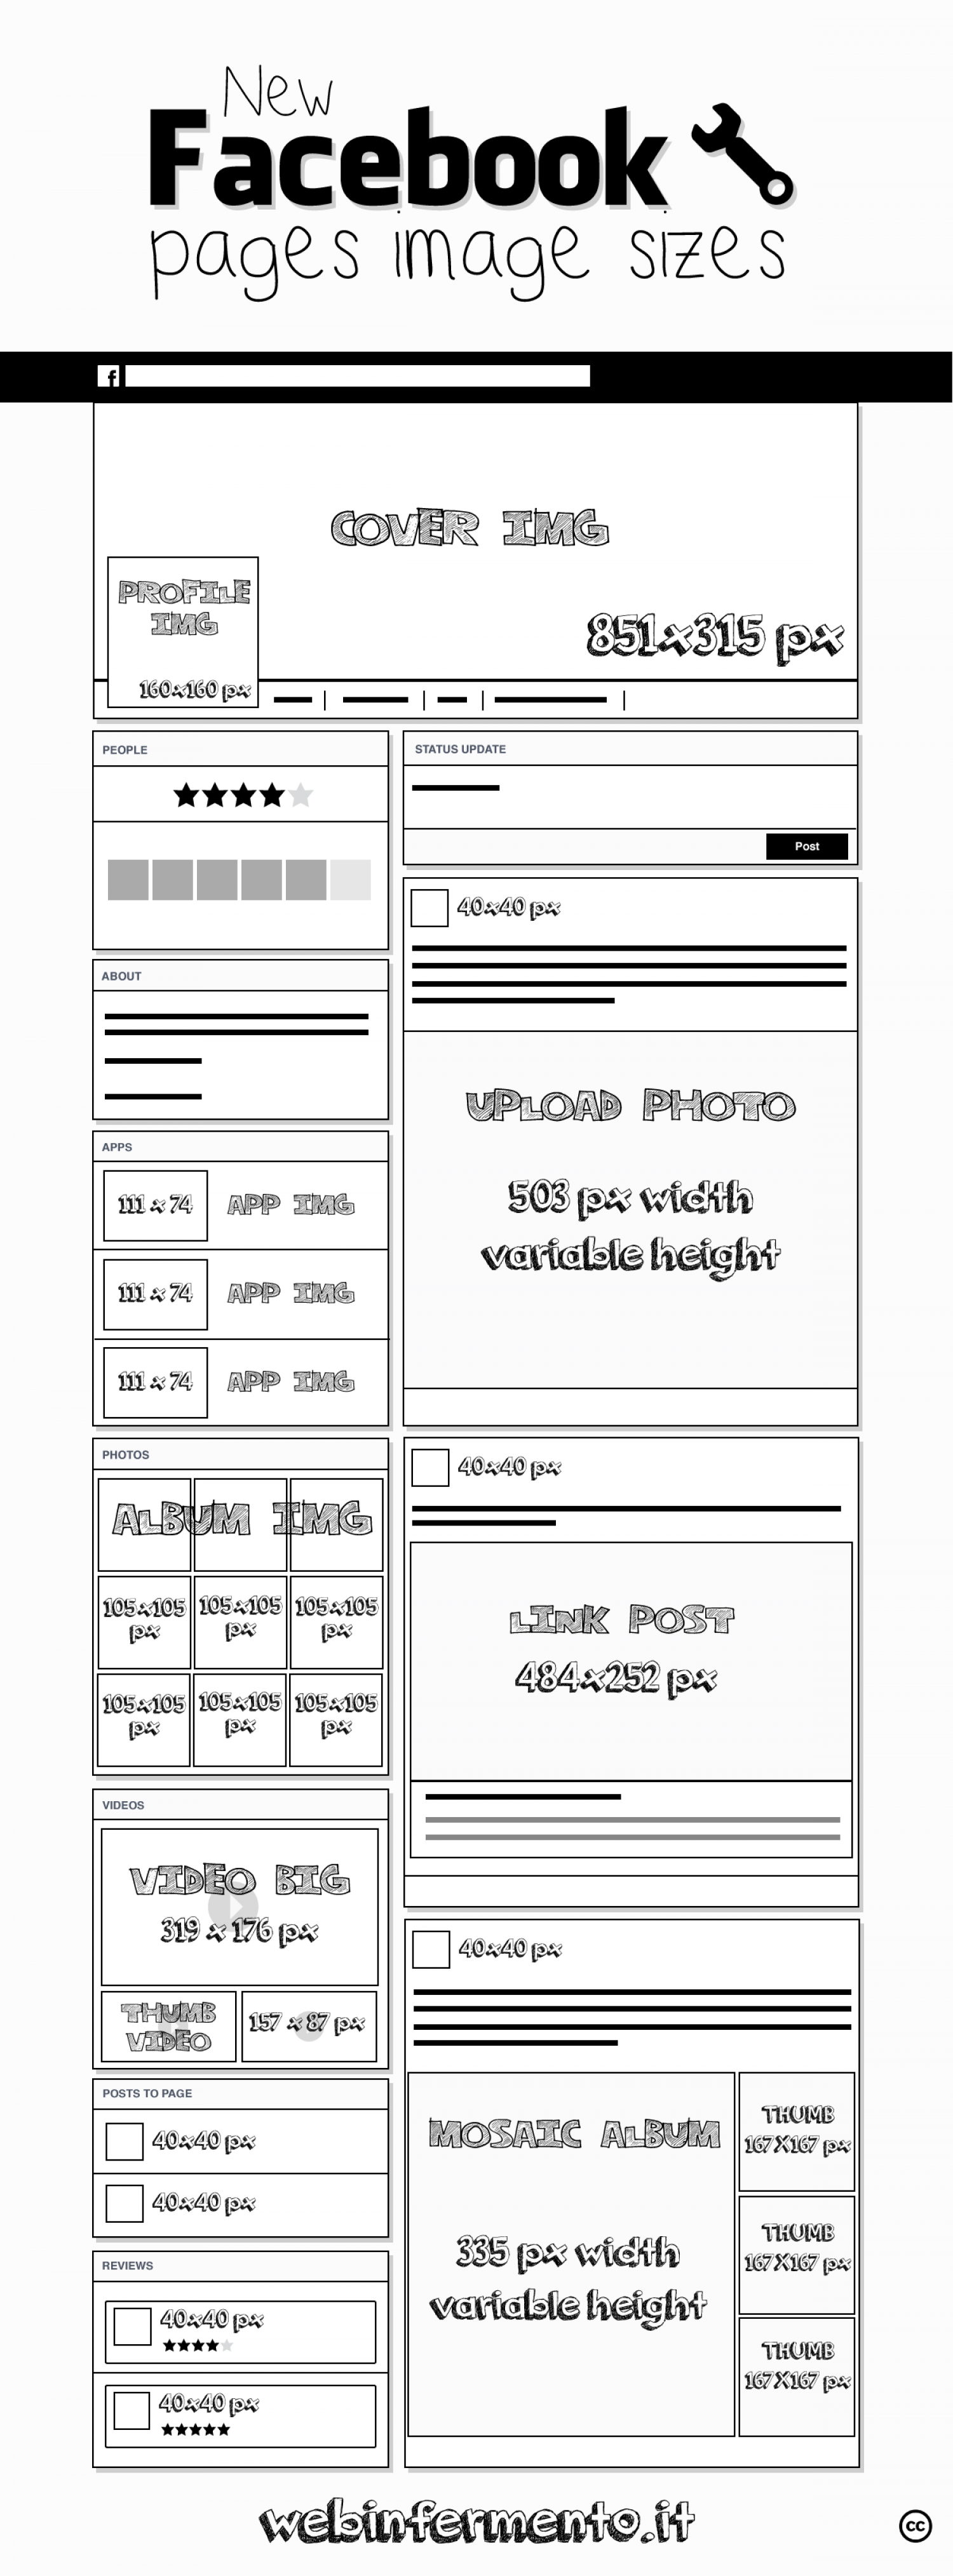 New Facebook Pages Image Sizes Infographic